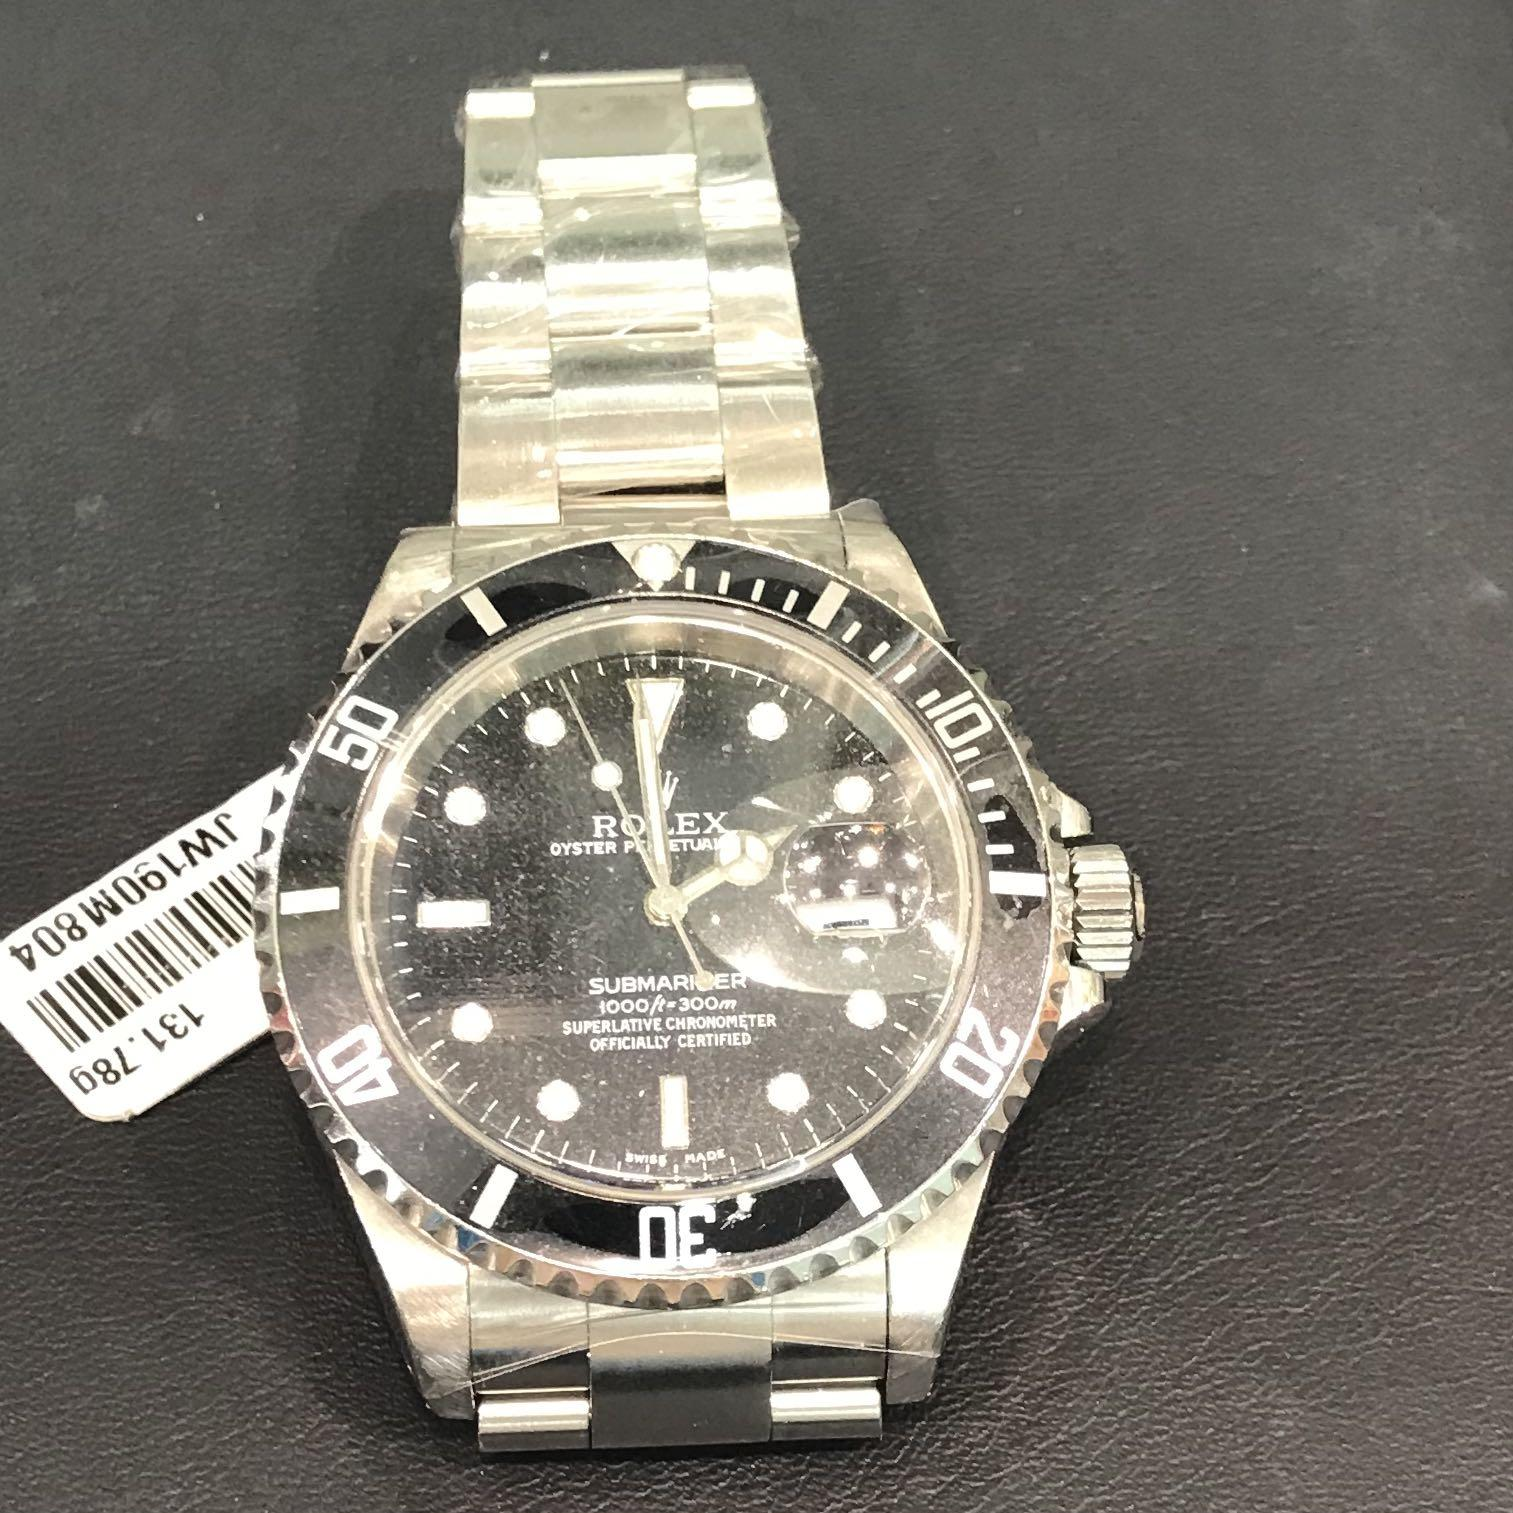 CLEARANCE SALES {Luxury Dress Watch - ROLEX Boy} Gorgeous & Beautiful White Gold Black Dial Authentic ROLEX SUBMARINER Oyster Perpetual  Model 16610 Come With Original Bracelet - No Pin Hole